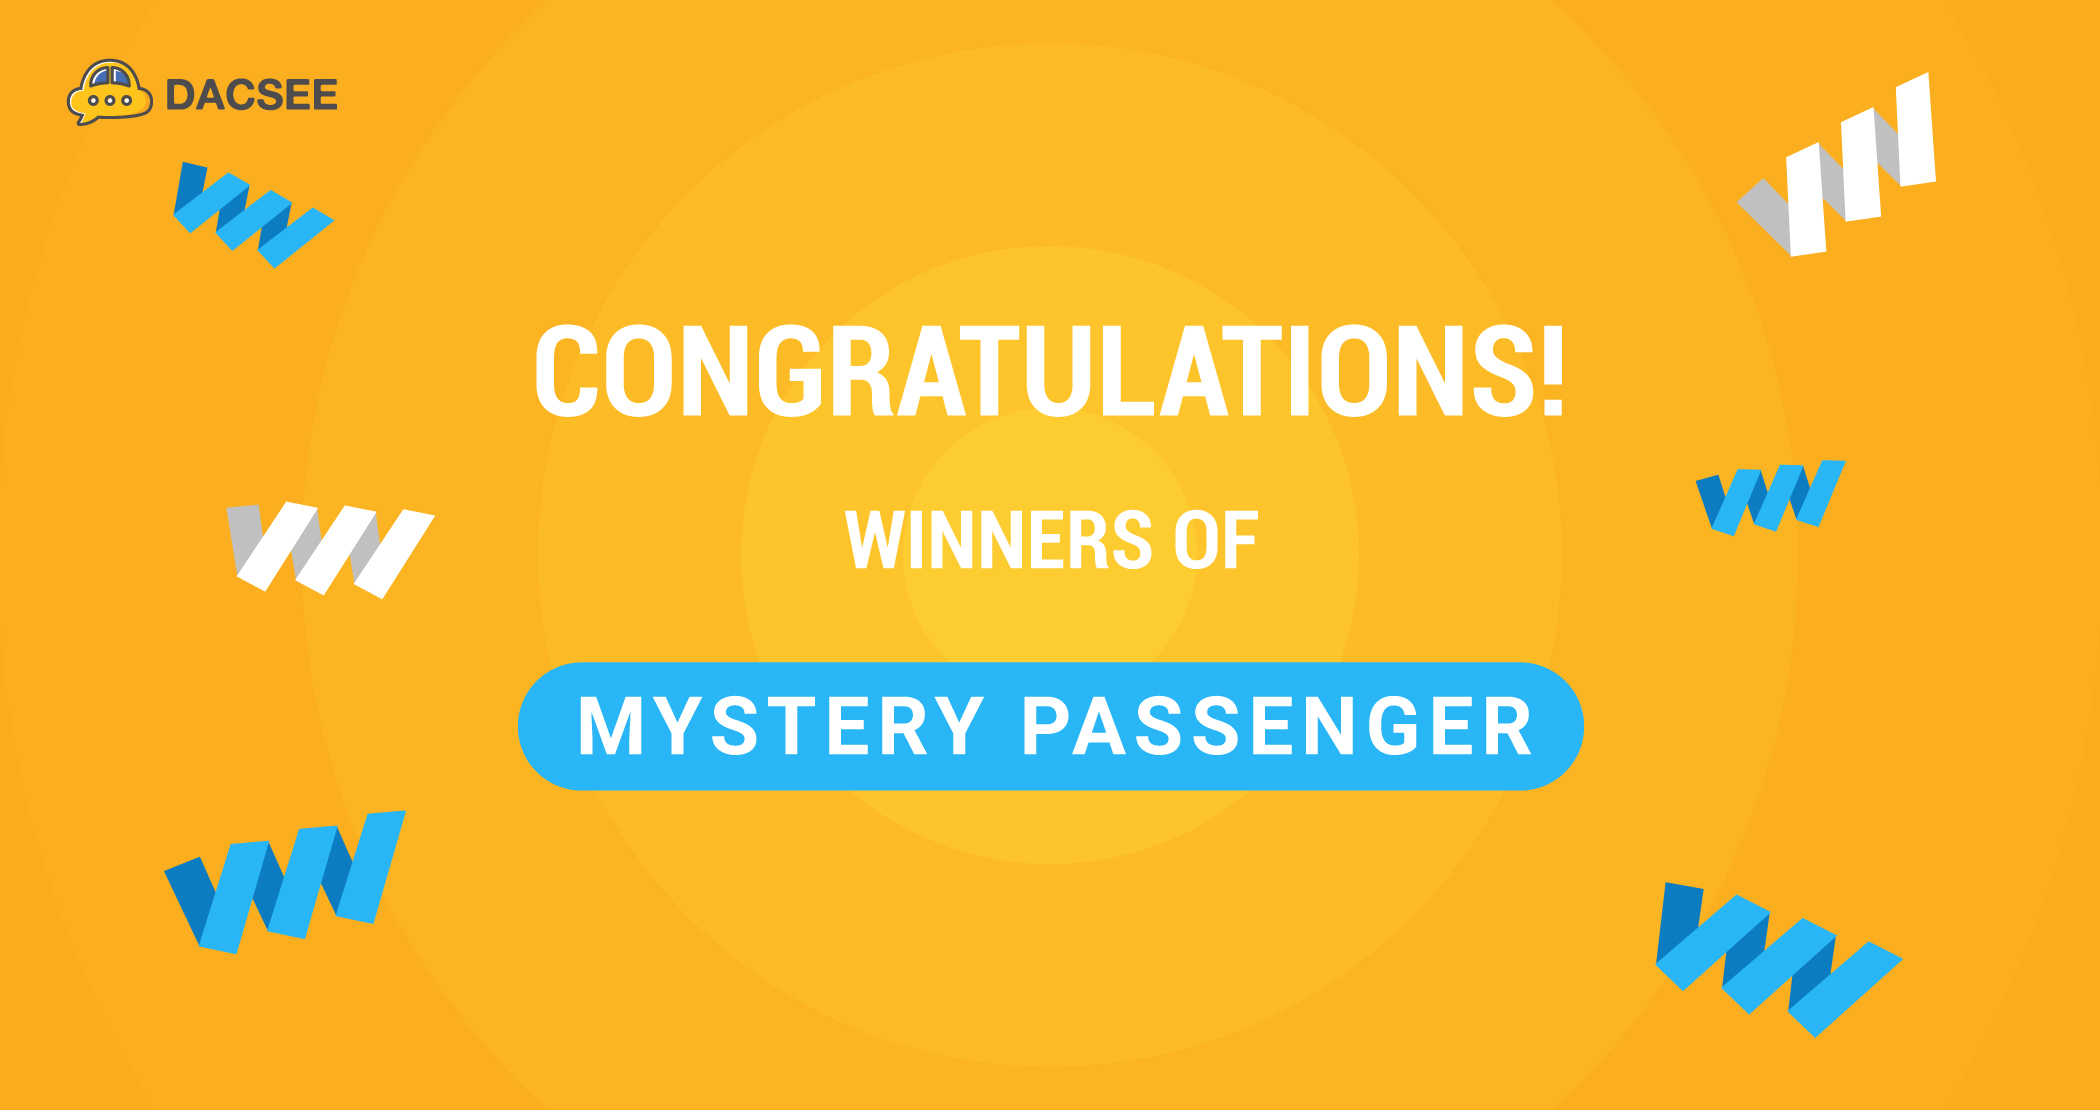 Congratulations to DACSEE Mystery Passenger Winners!